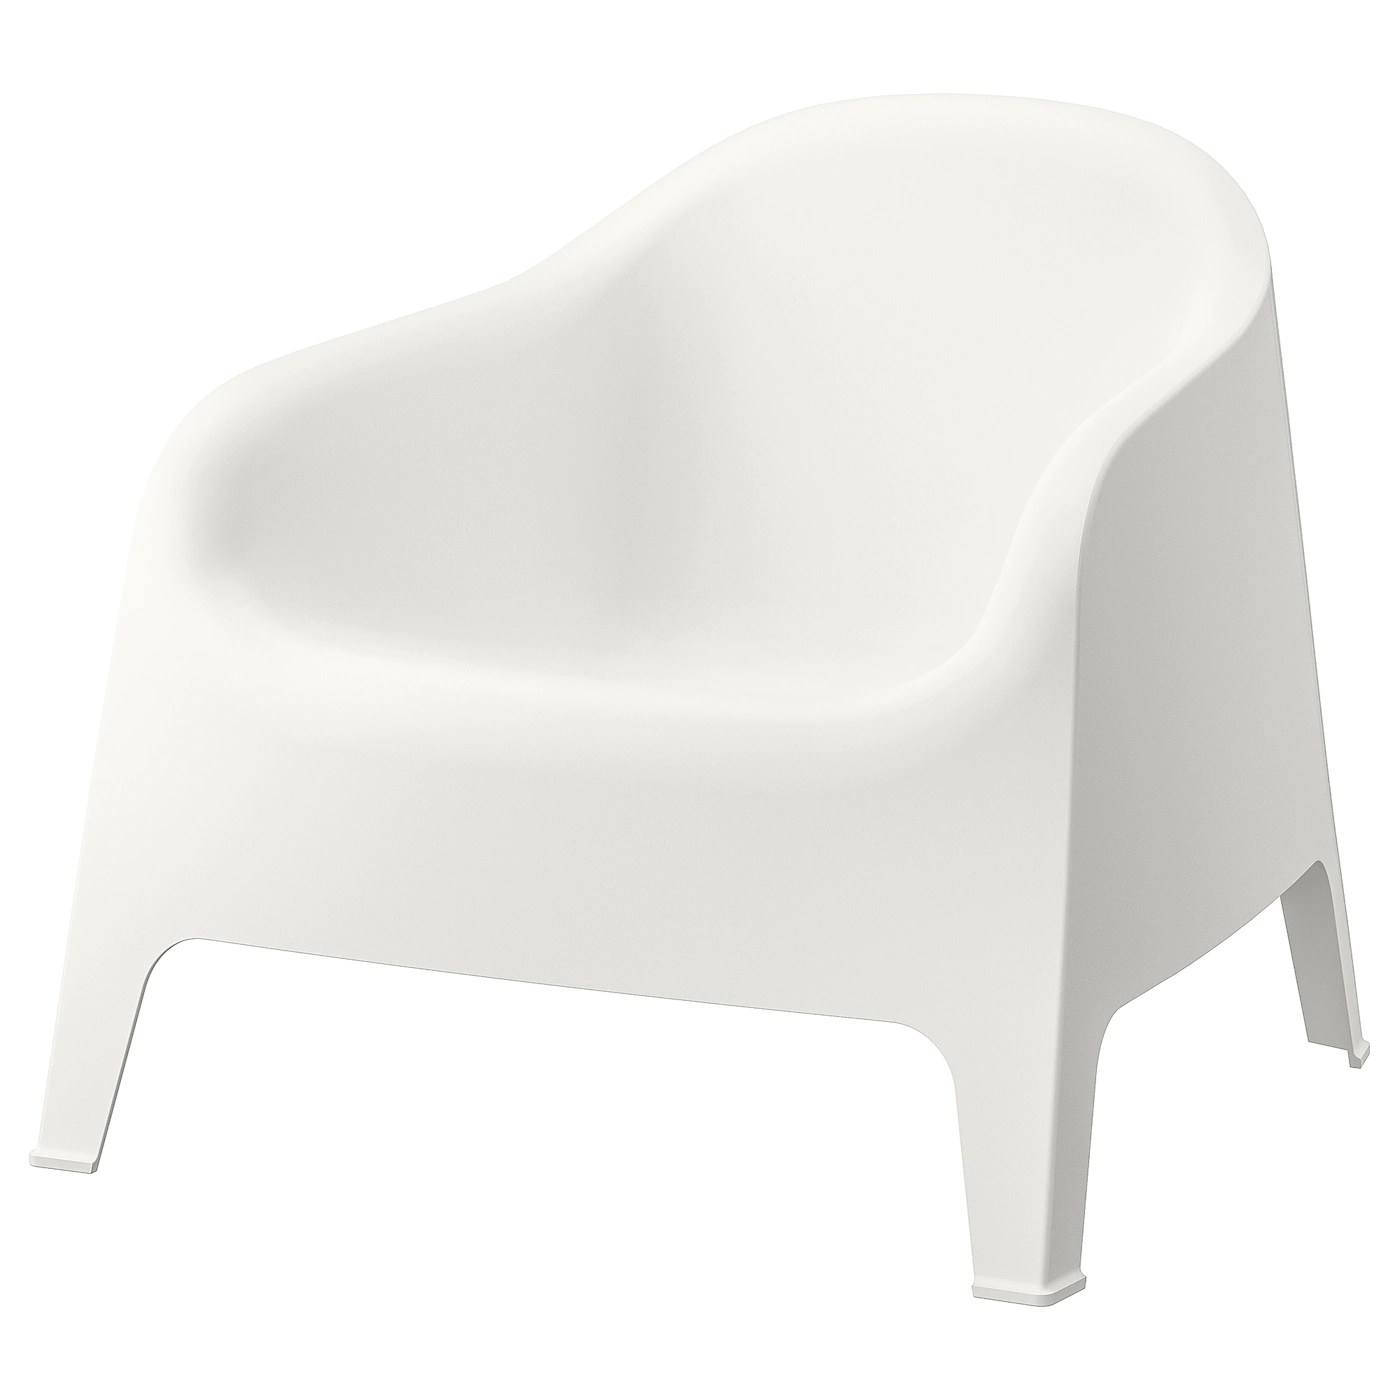 Skarpo Armchair Outdoor White Ikea